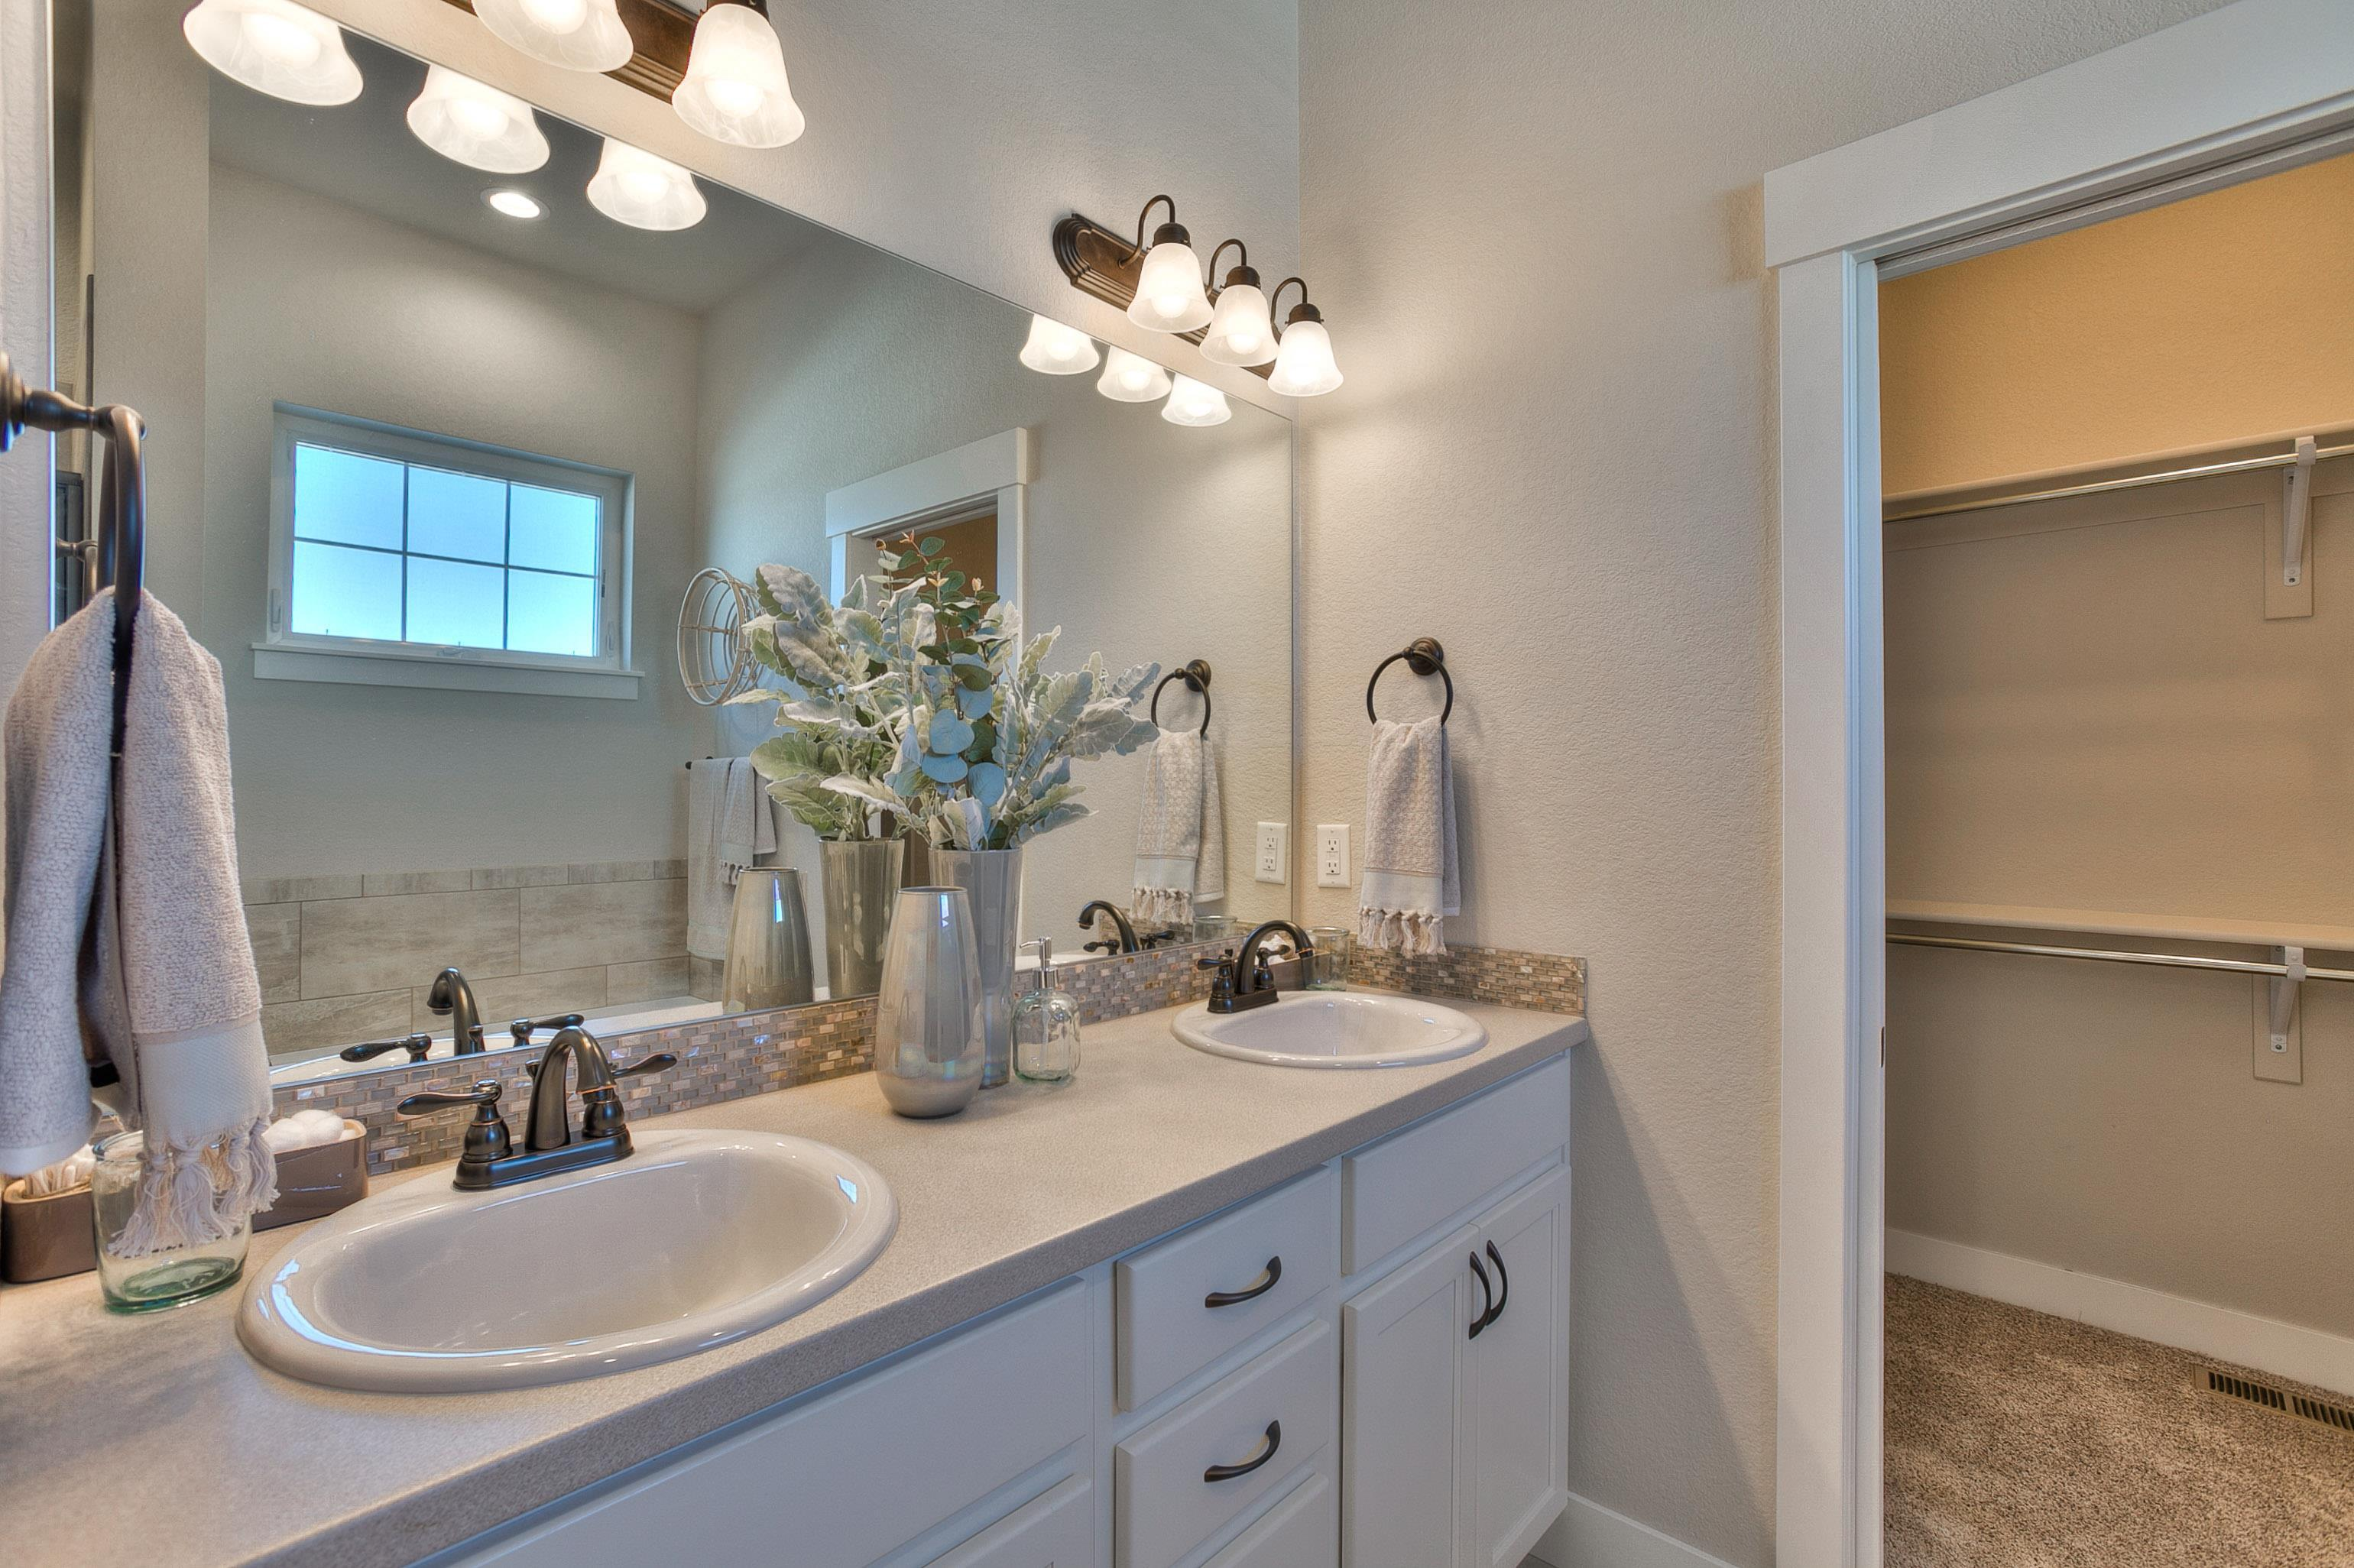 Bathroom featured in the Ambrose By Landmark Homes  in Fort Collins-Loveland, CO